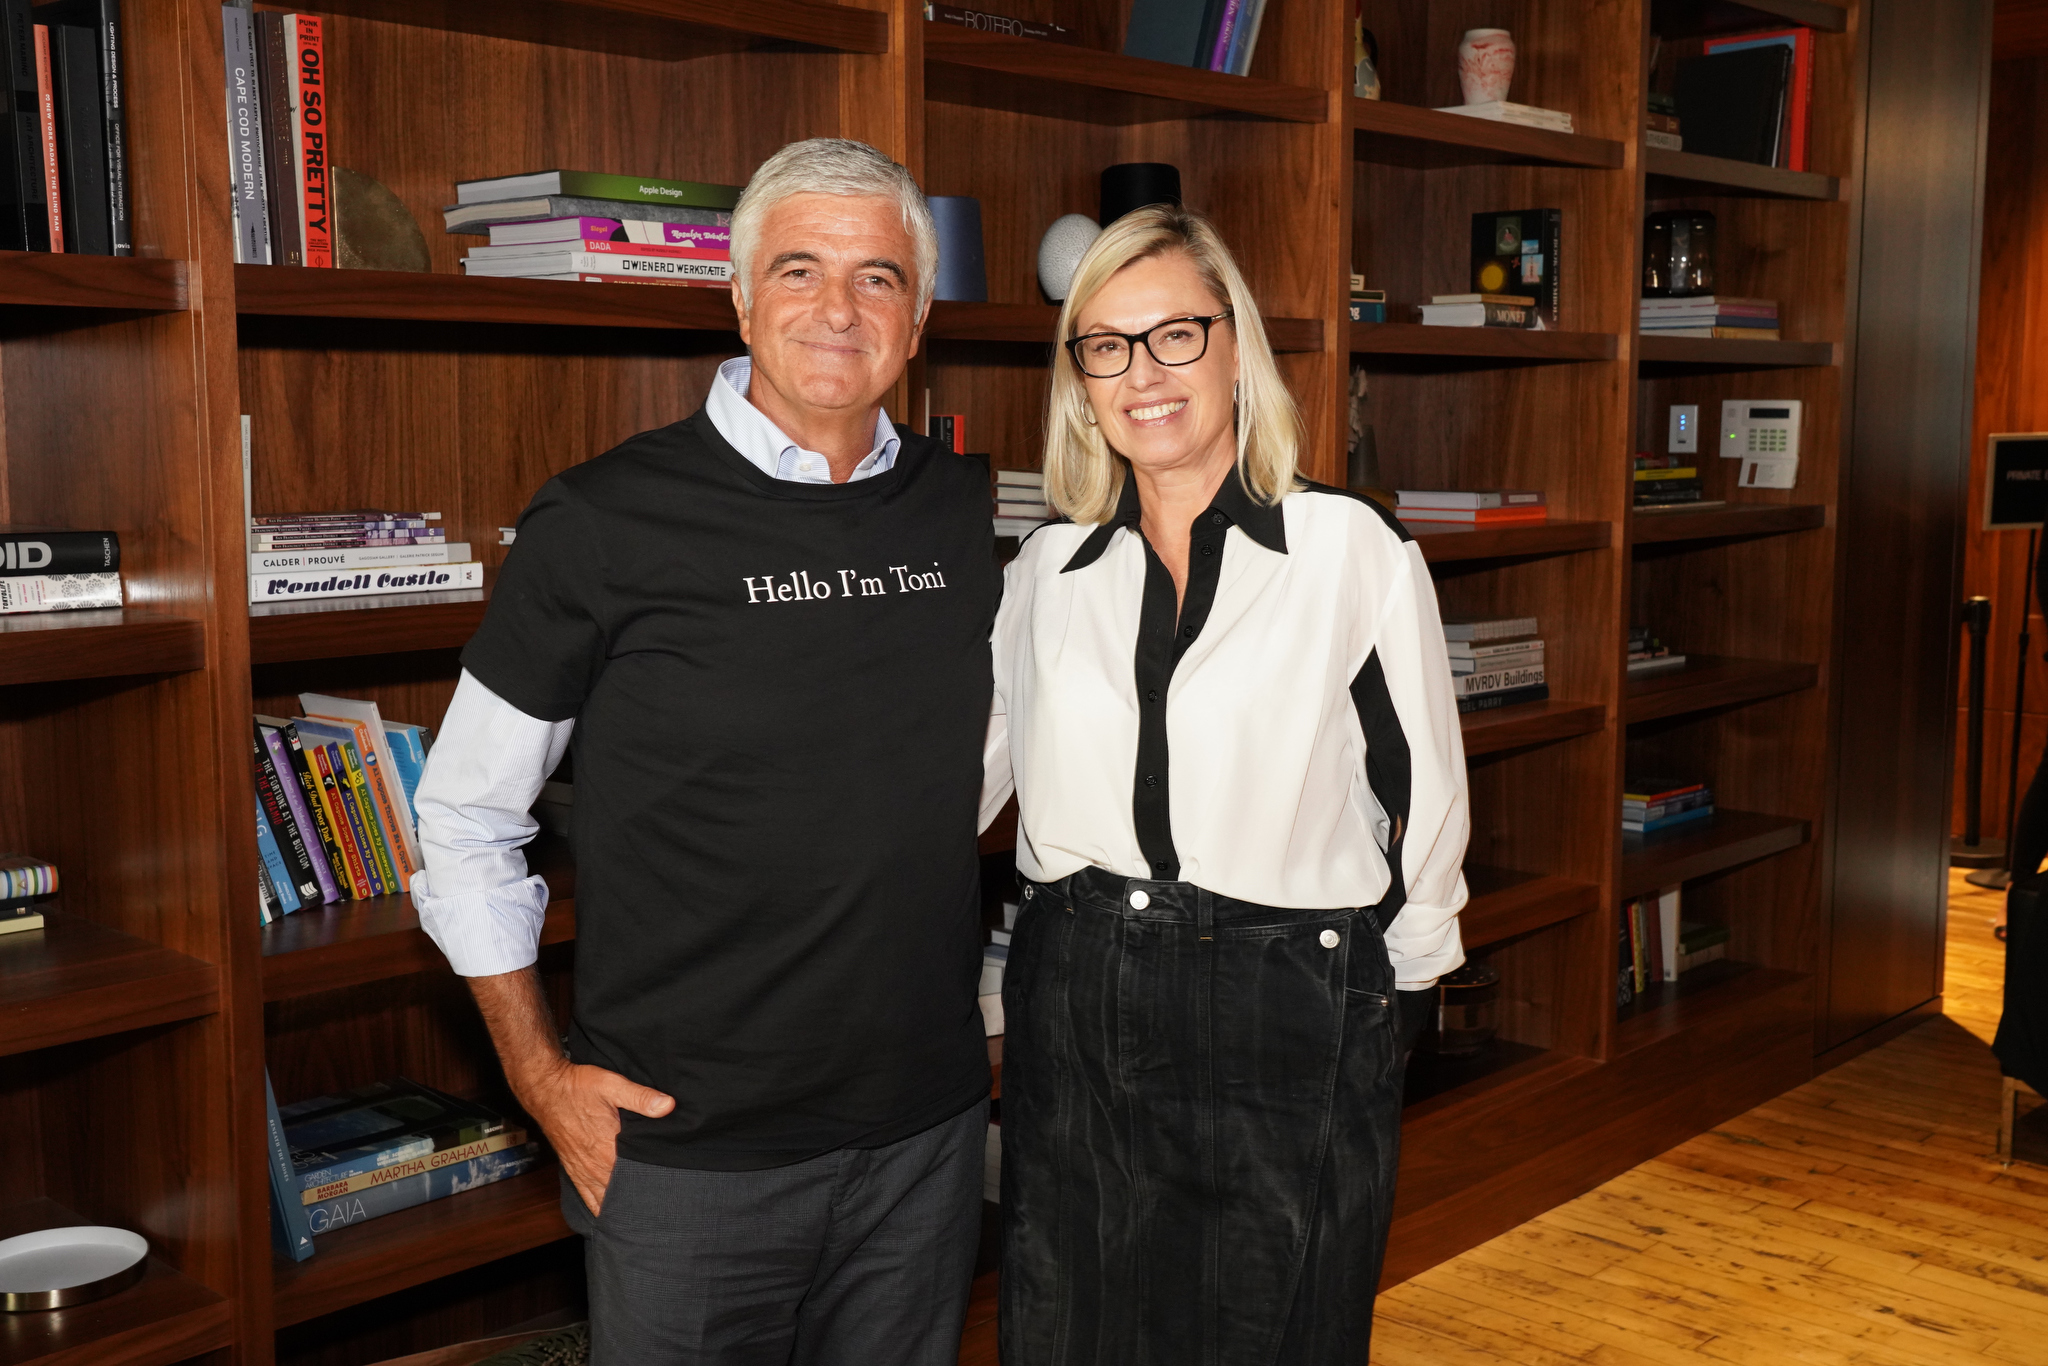 LVMH Brings Its Start-up Initiative to the Americas